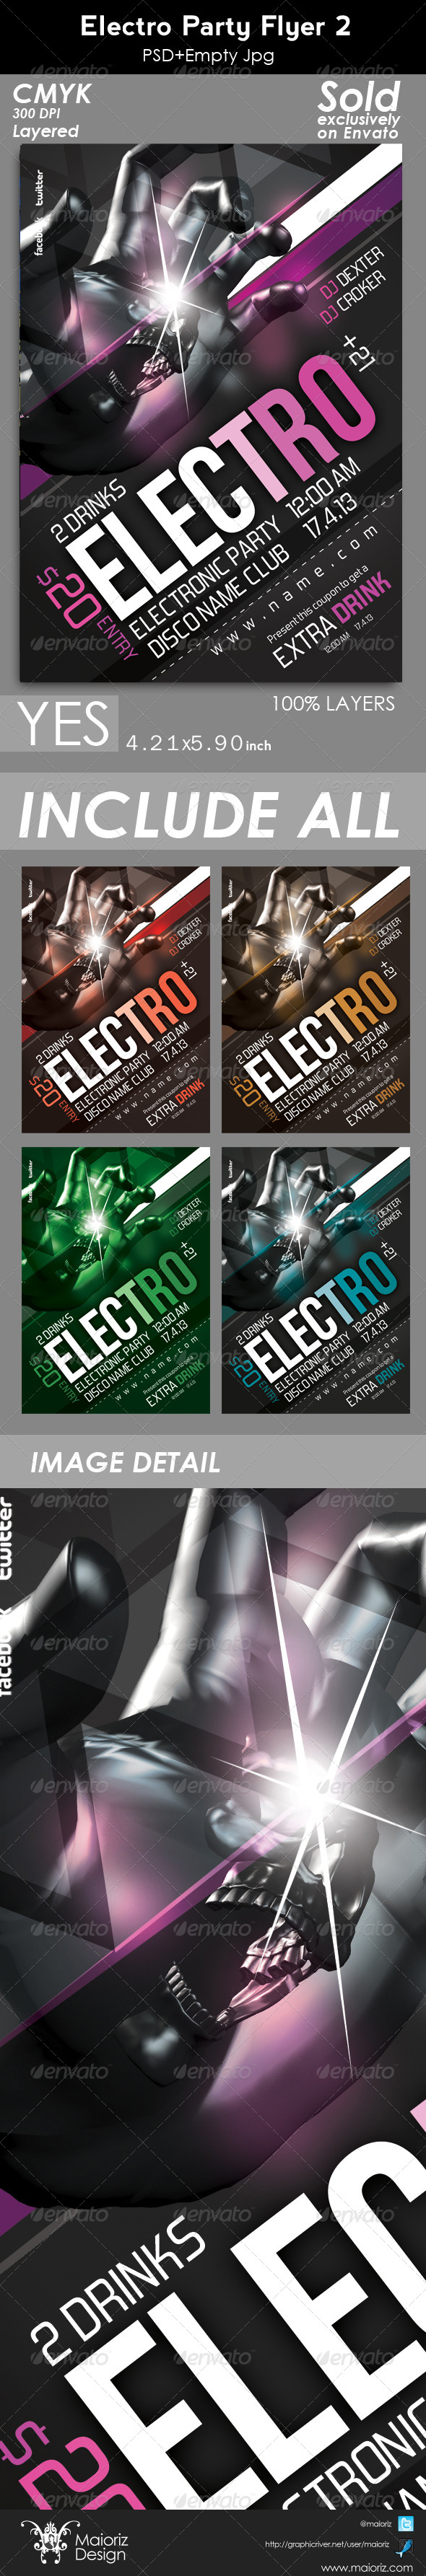 Electro Party Flyer 2 - Clubs & Parties Events